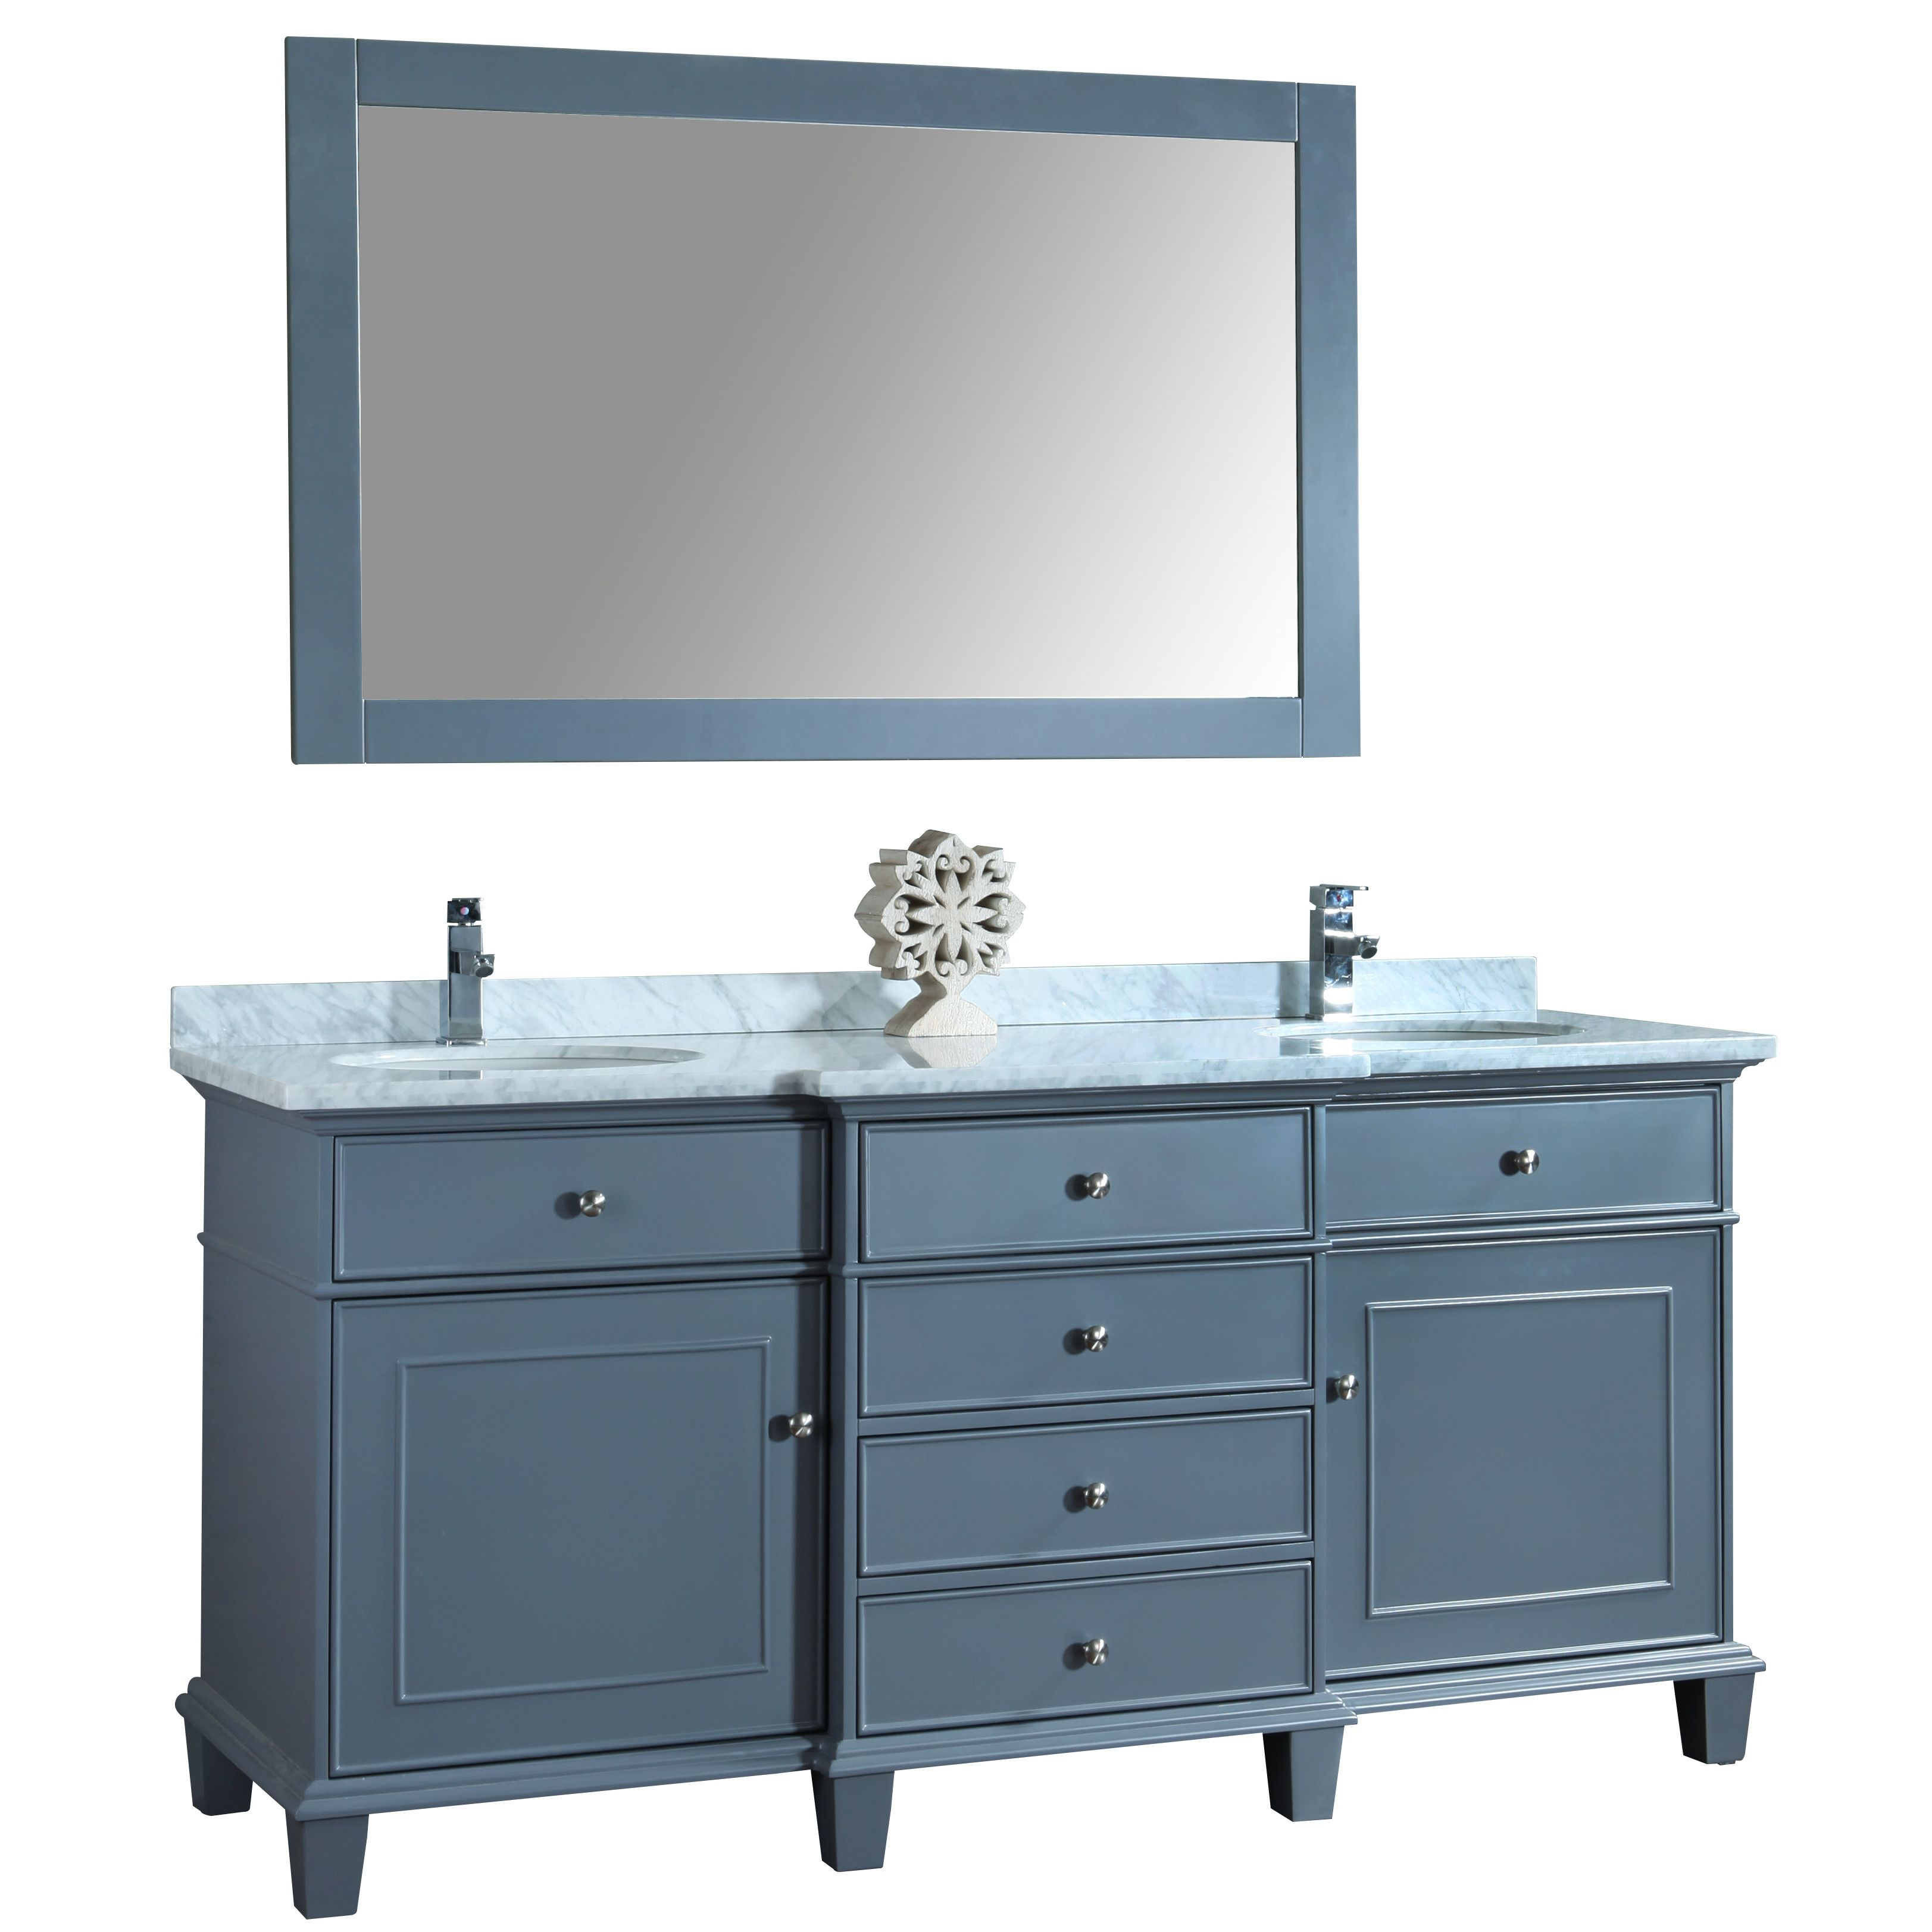 chester xf trend vanities makeup county pa narrow and inspiration design wayfair bathroom depth deep inches vanity incredible of